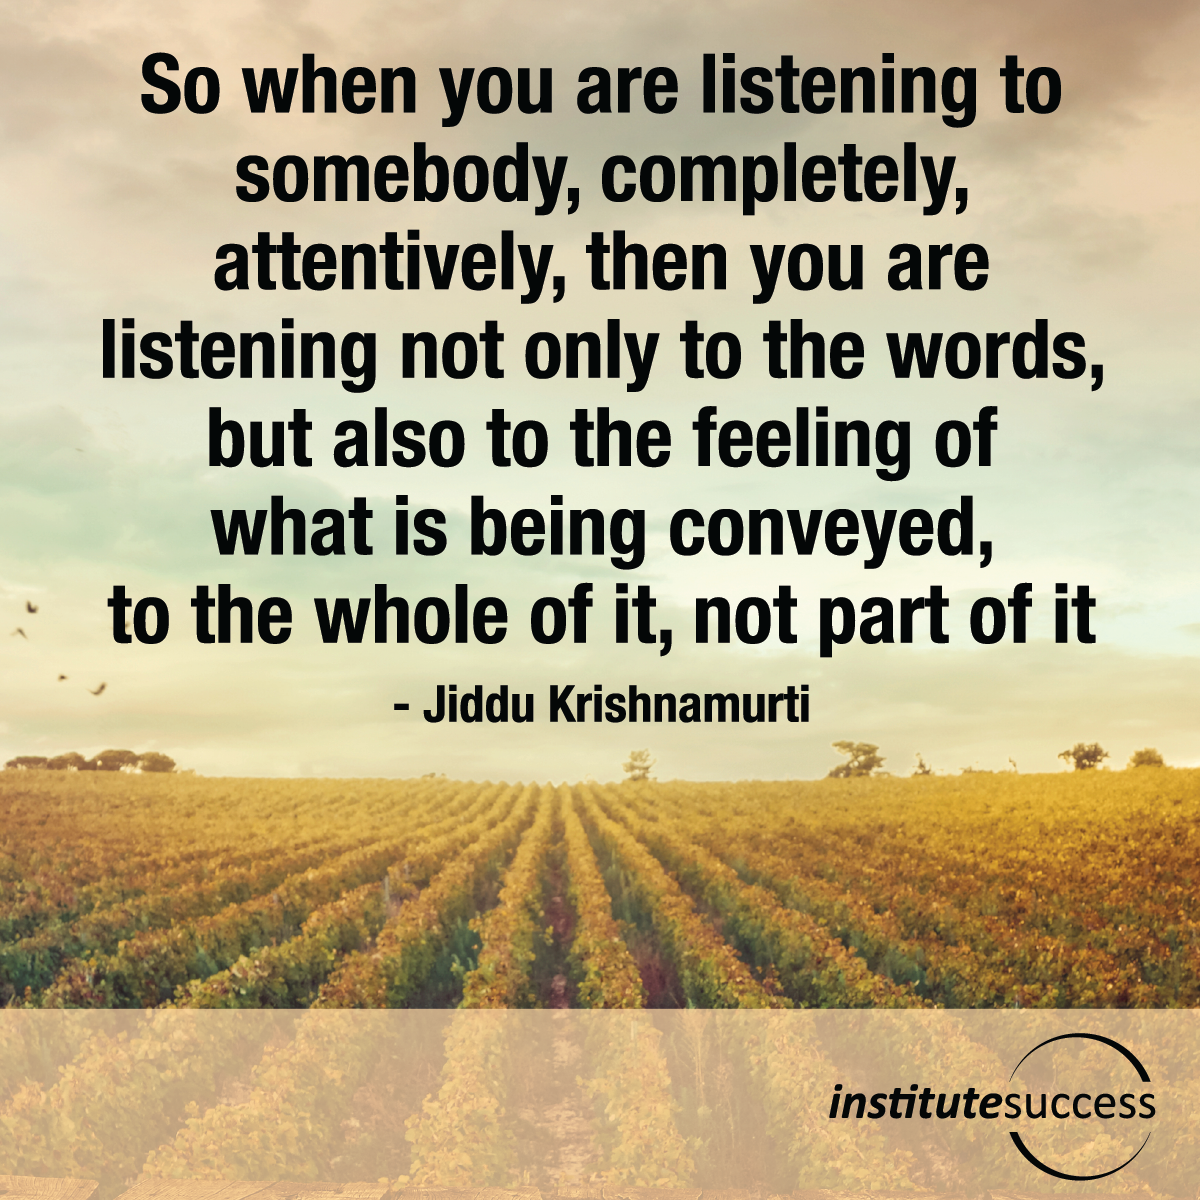 So when you are listening to somebody, completely, attentively, then you are listening not only to the words, but also to the feeling of what is being conveyed, to the whole of it, not part of it – Jiddu Krishnamurti